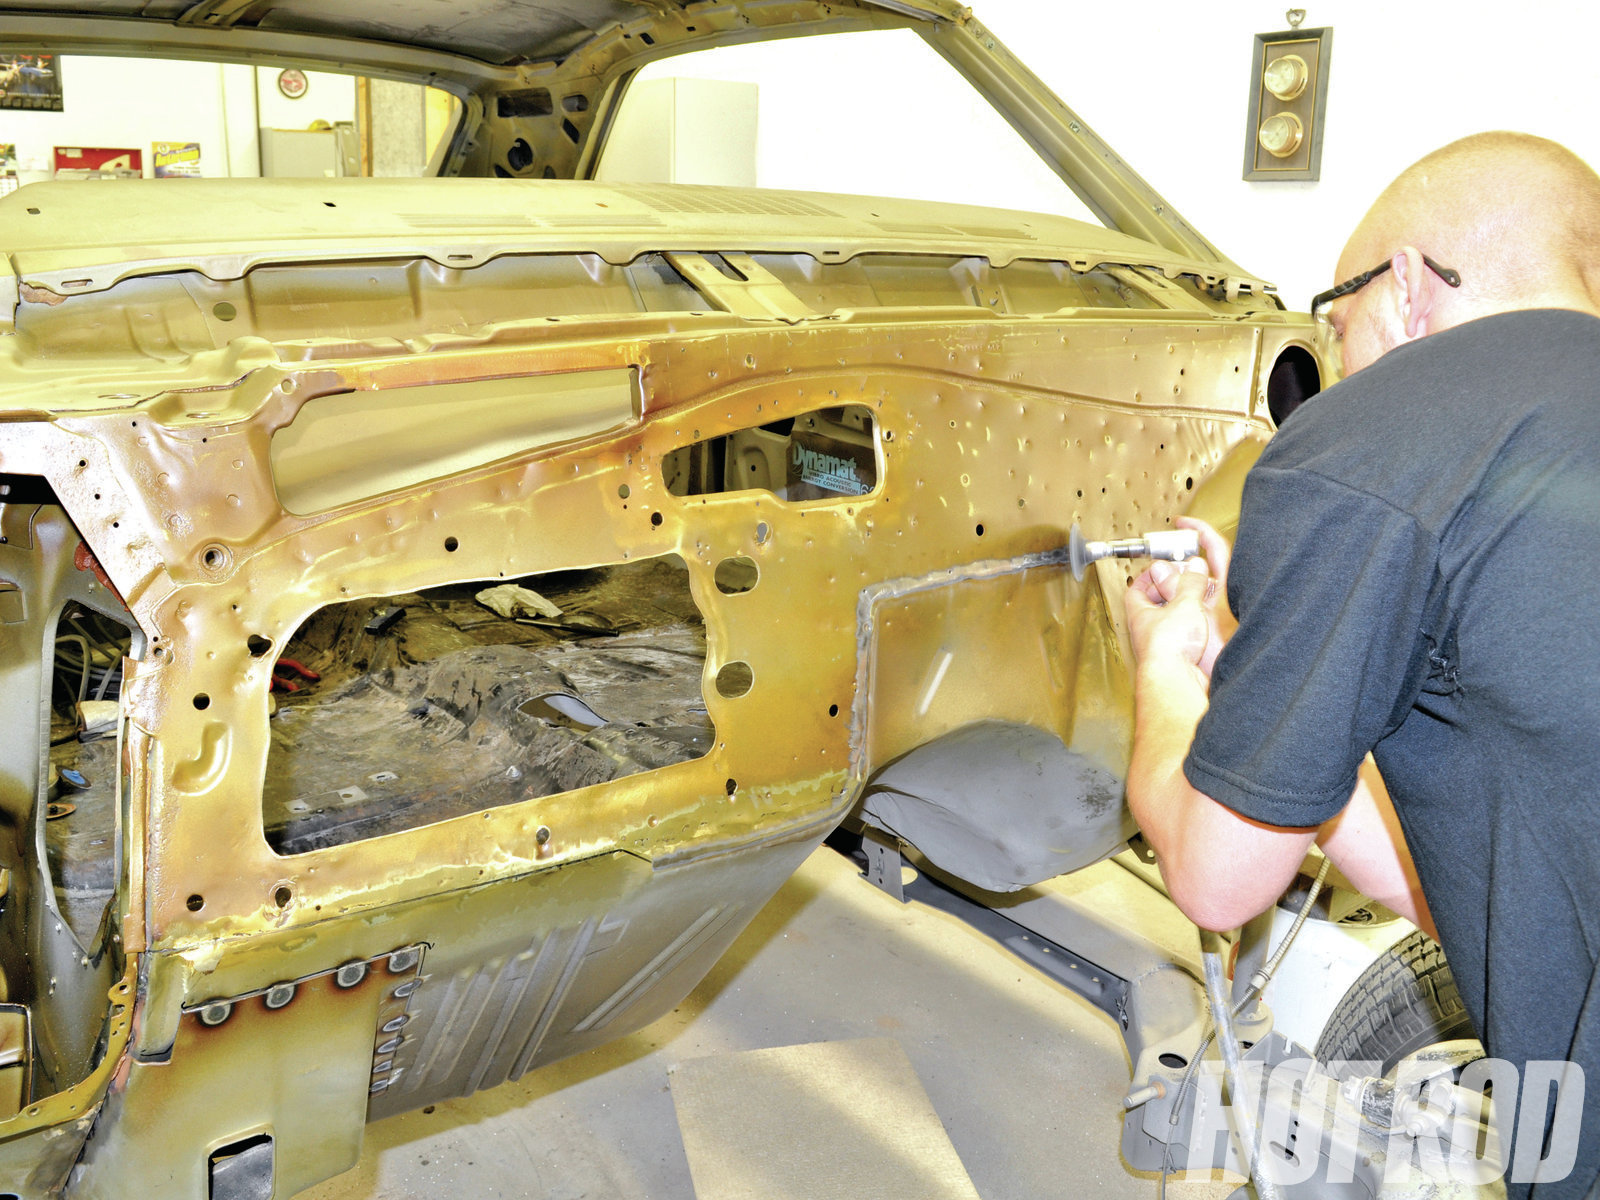 A fresh coat of PPG Self Etching Wash Primer was applied over the original firewall to protect it from corrosion. The Smoothie Firewall Panel was held in place with Clecos and traced yet again. With the panel removed, Grzelakowski sanded the primer around the panel edges to expose bare metal for welding. You'll also need to prime the backside of the new panel and then clean several areas where you'll tack-weld from the backside.